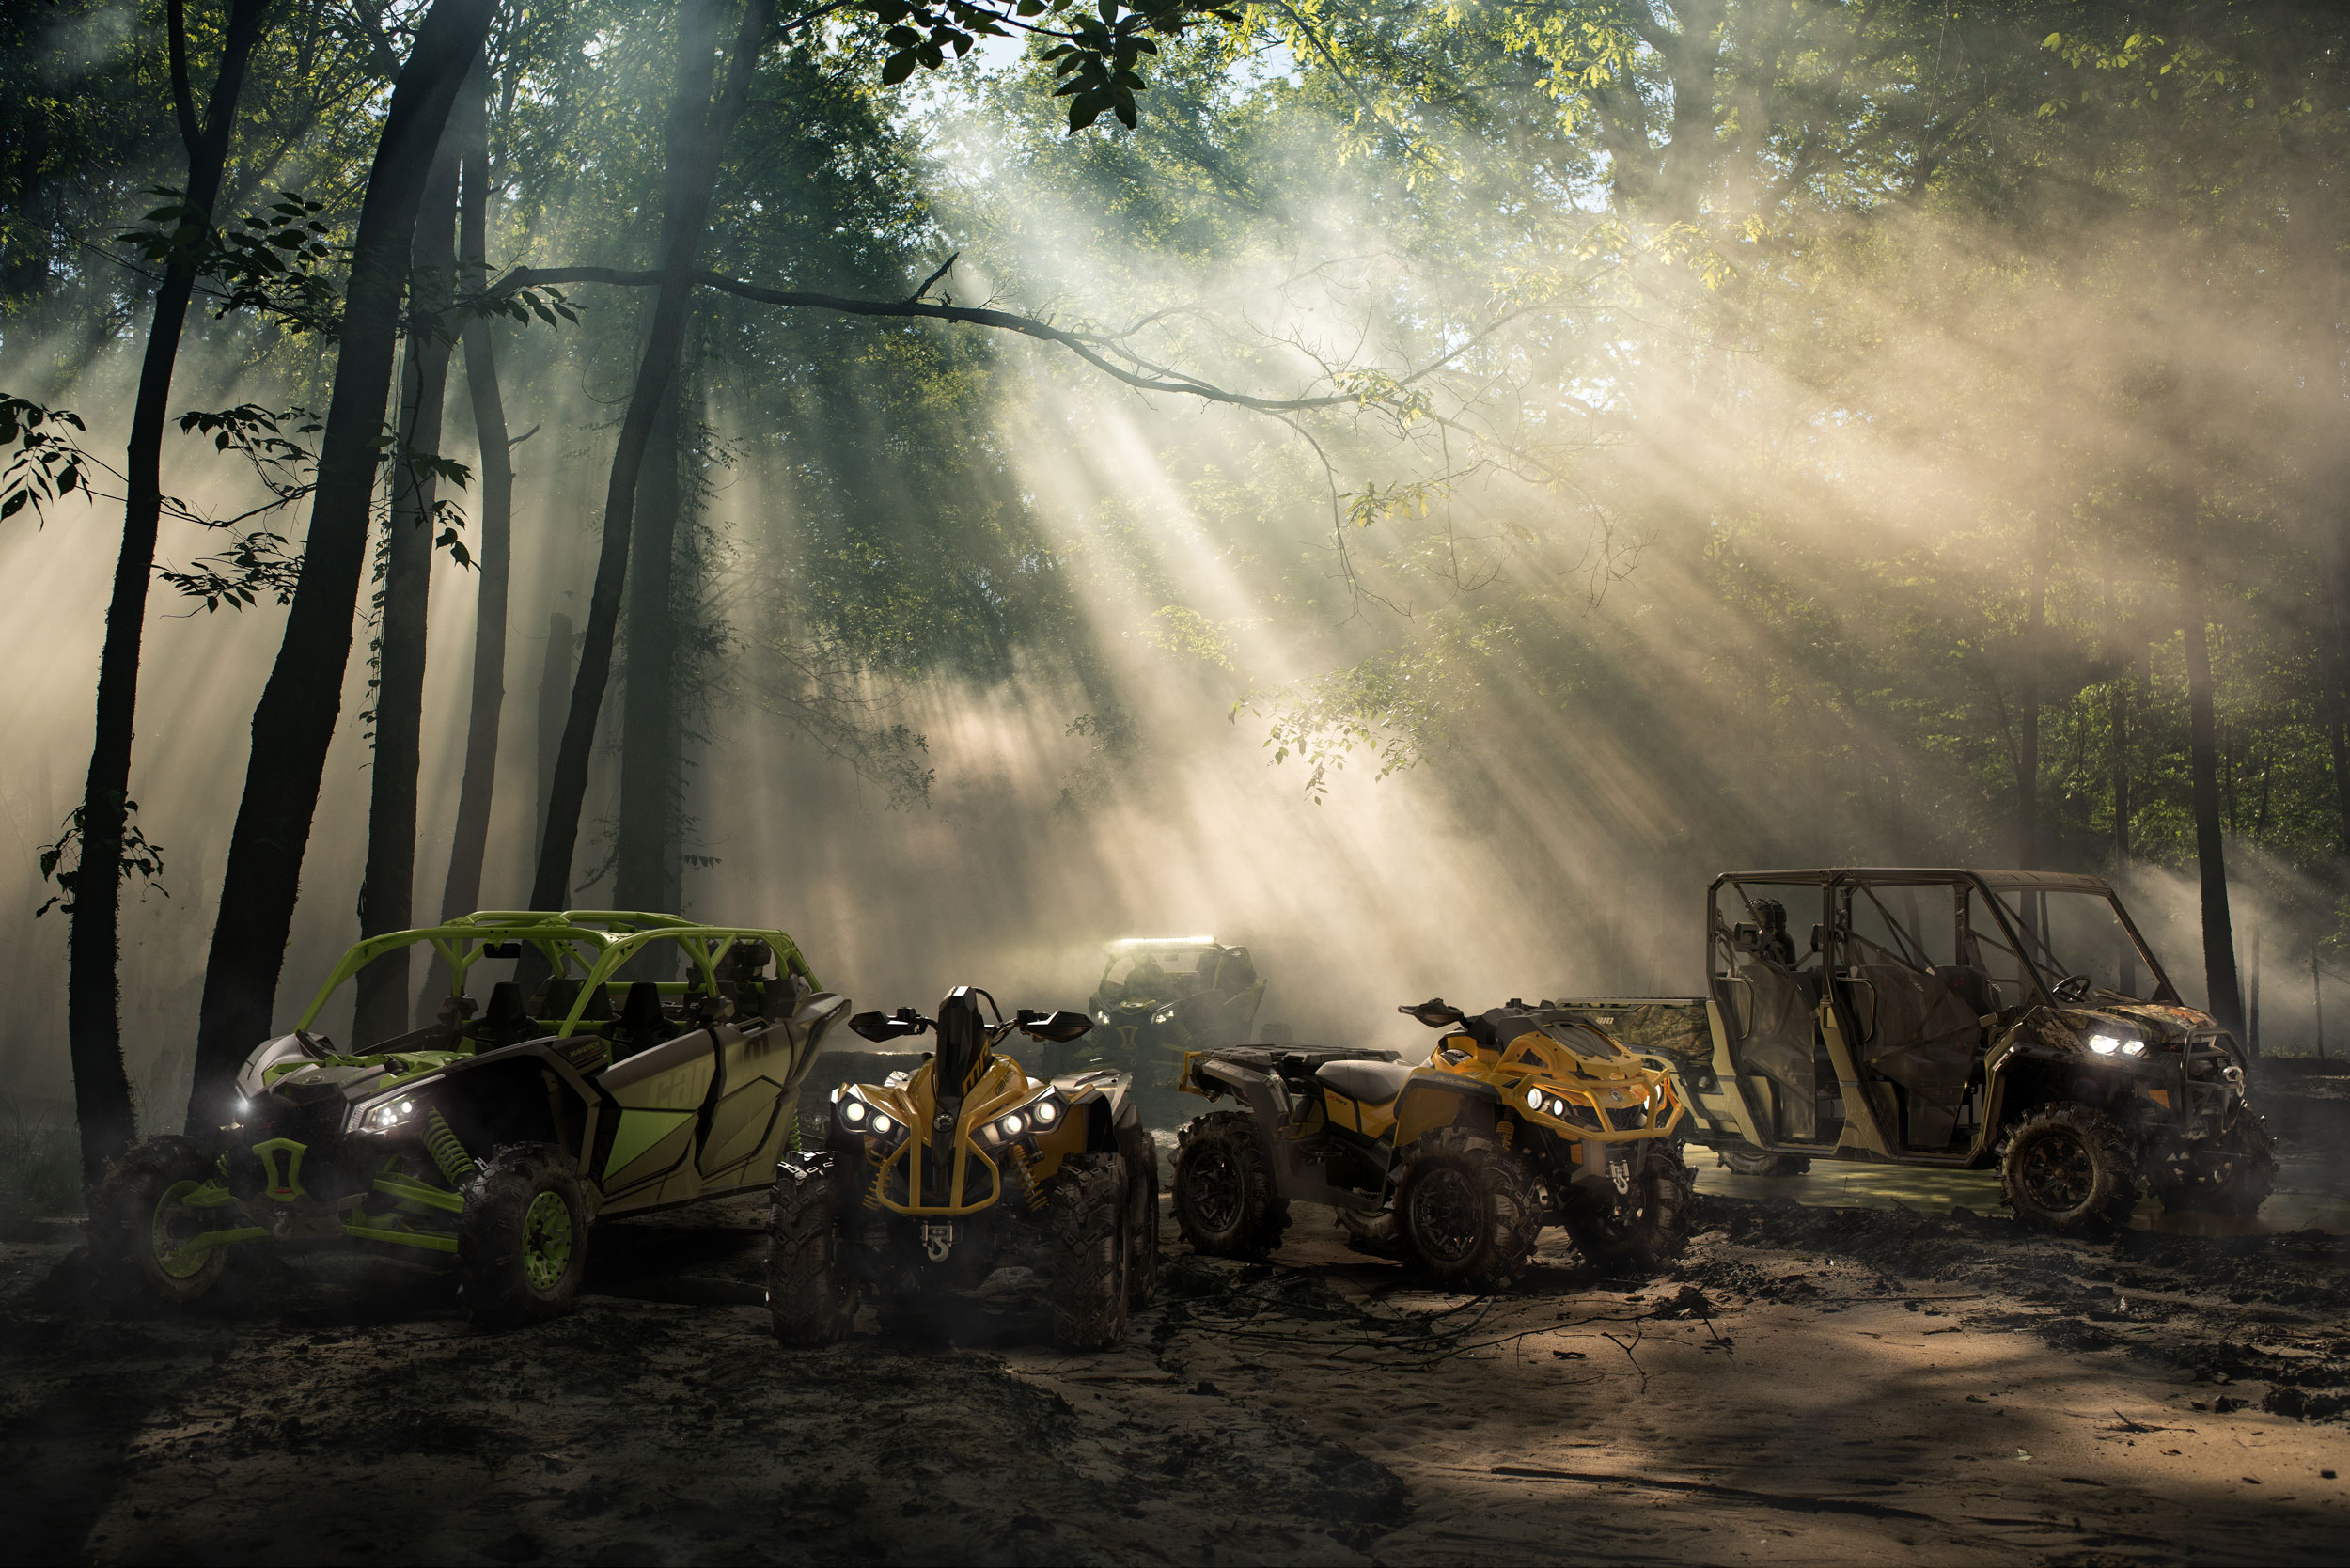 ATV vs SxS/UTV: Differences, benefits and everything in between